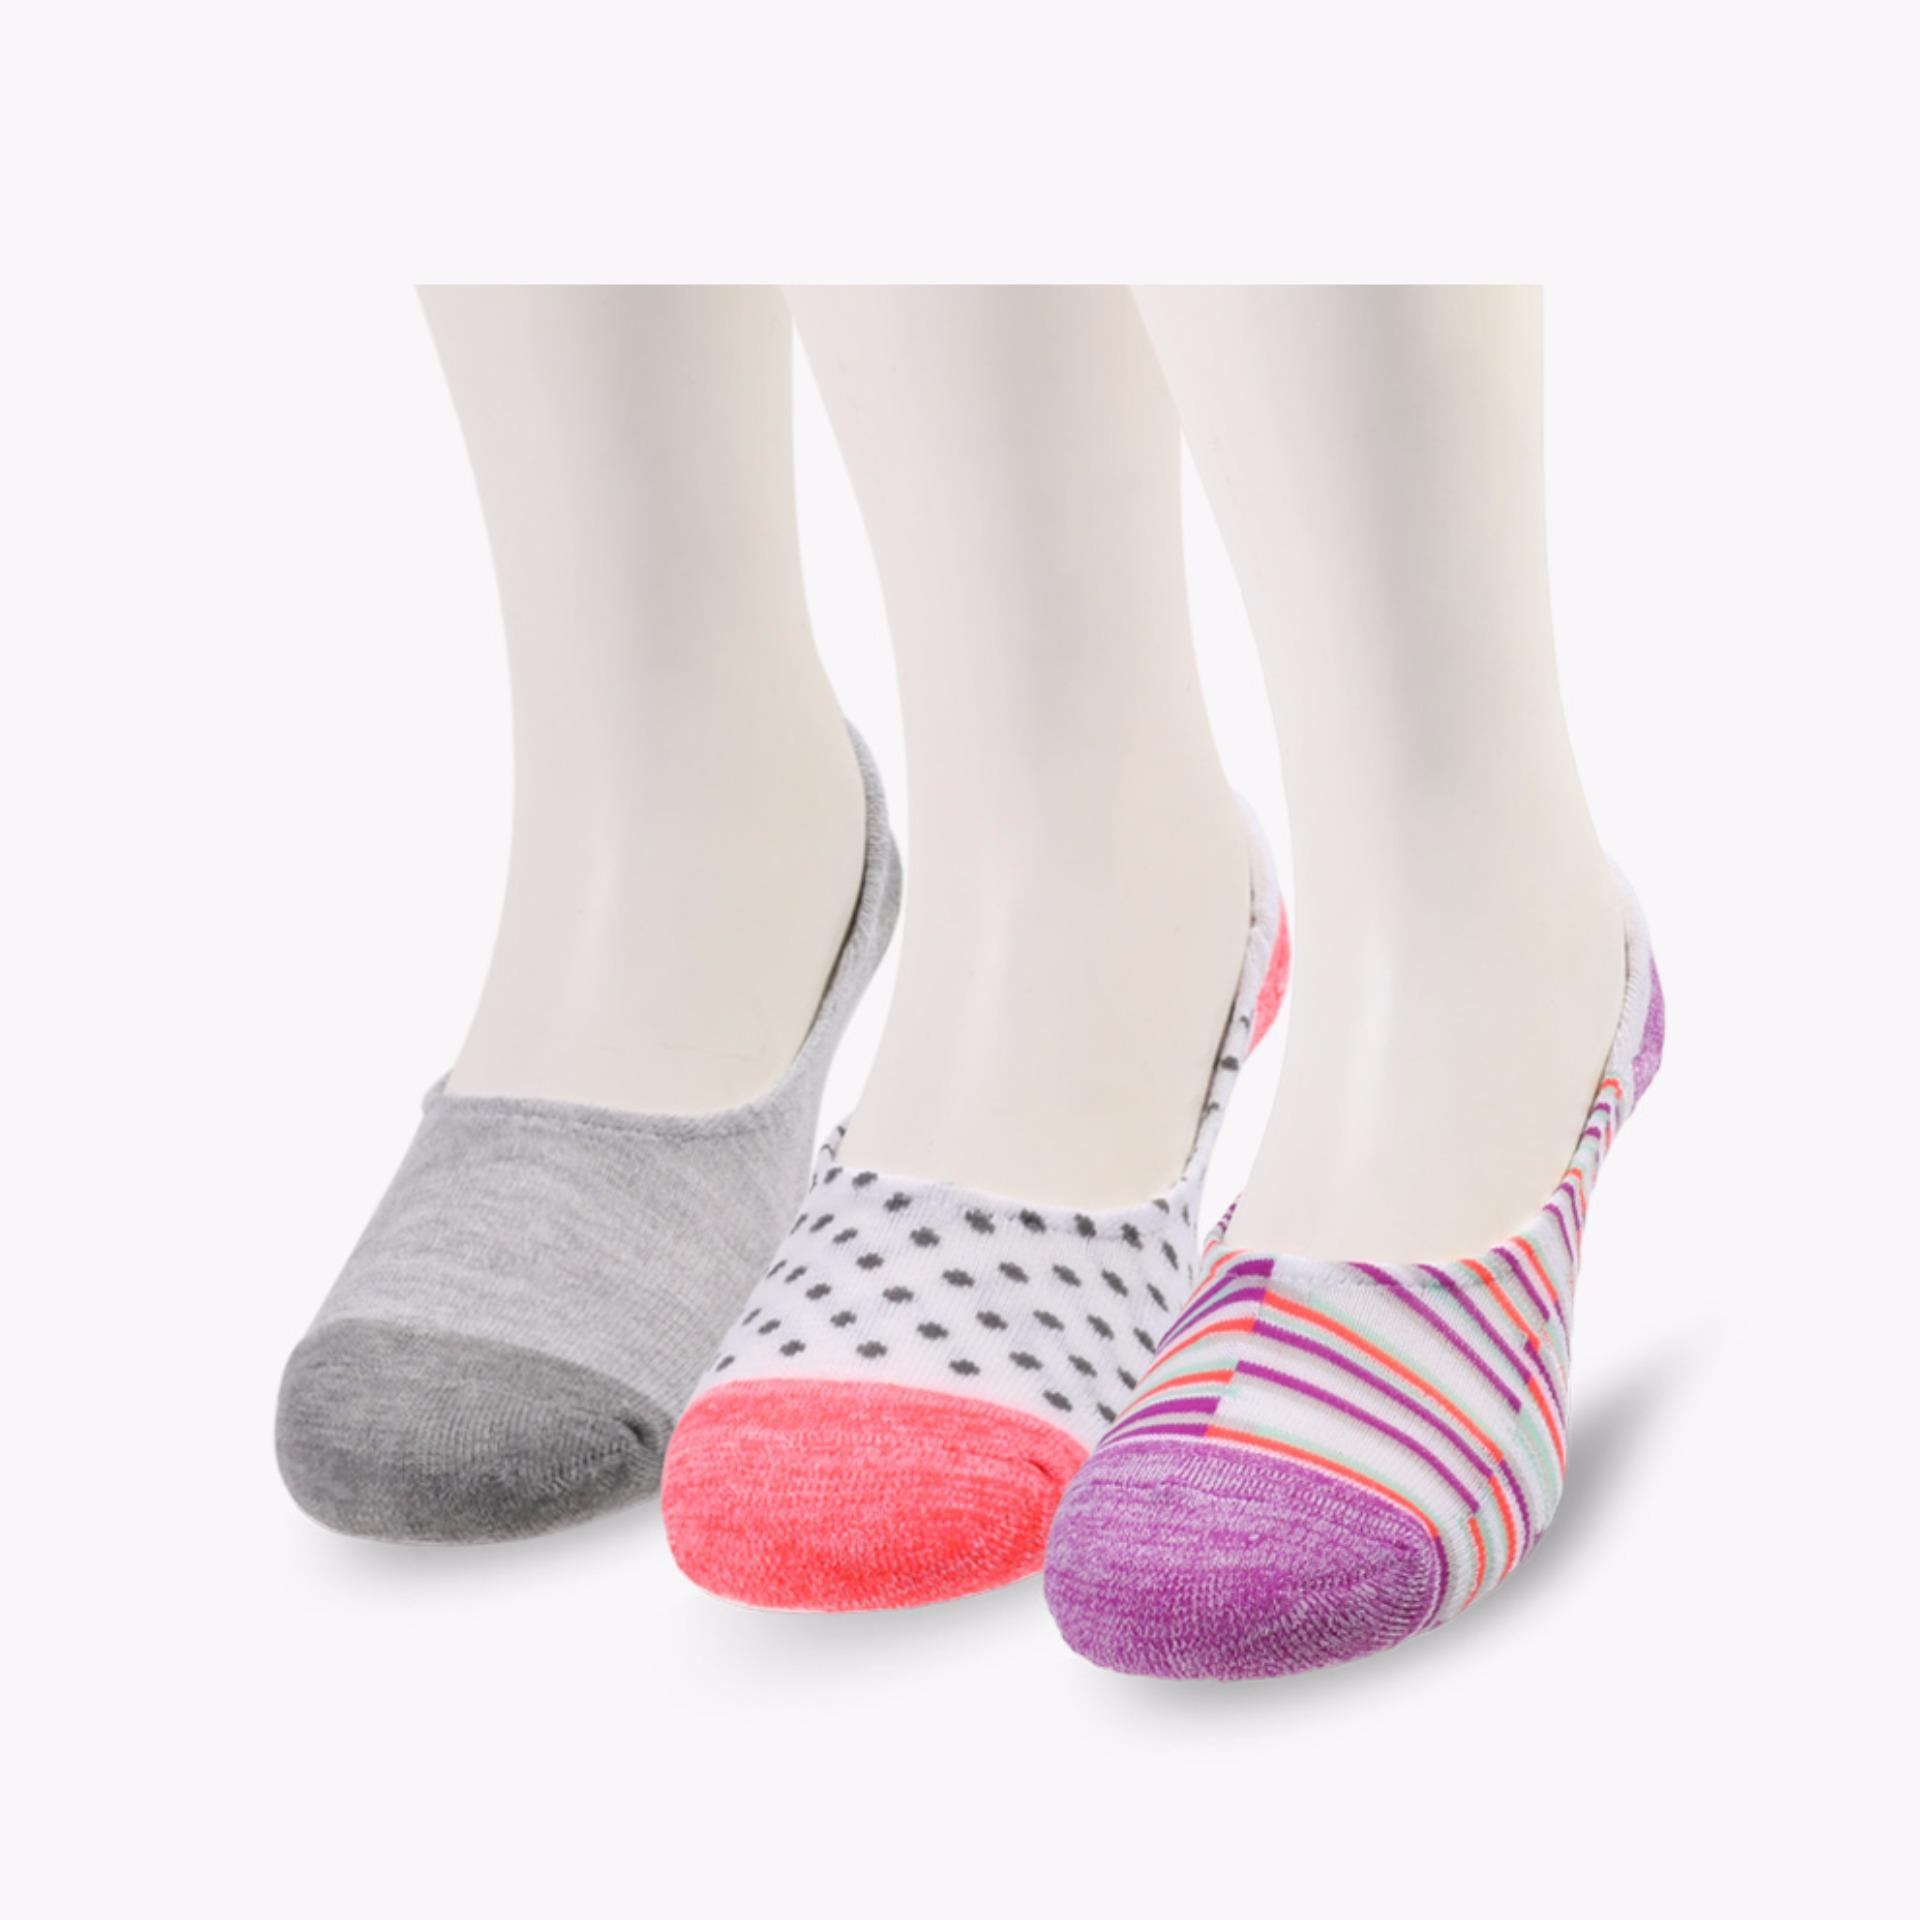 Jual Skechers Relaxed Fit Expected Gomel Women S Socks Multicolor Branded